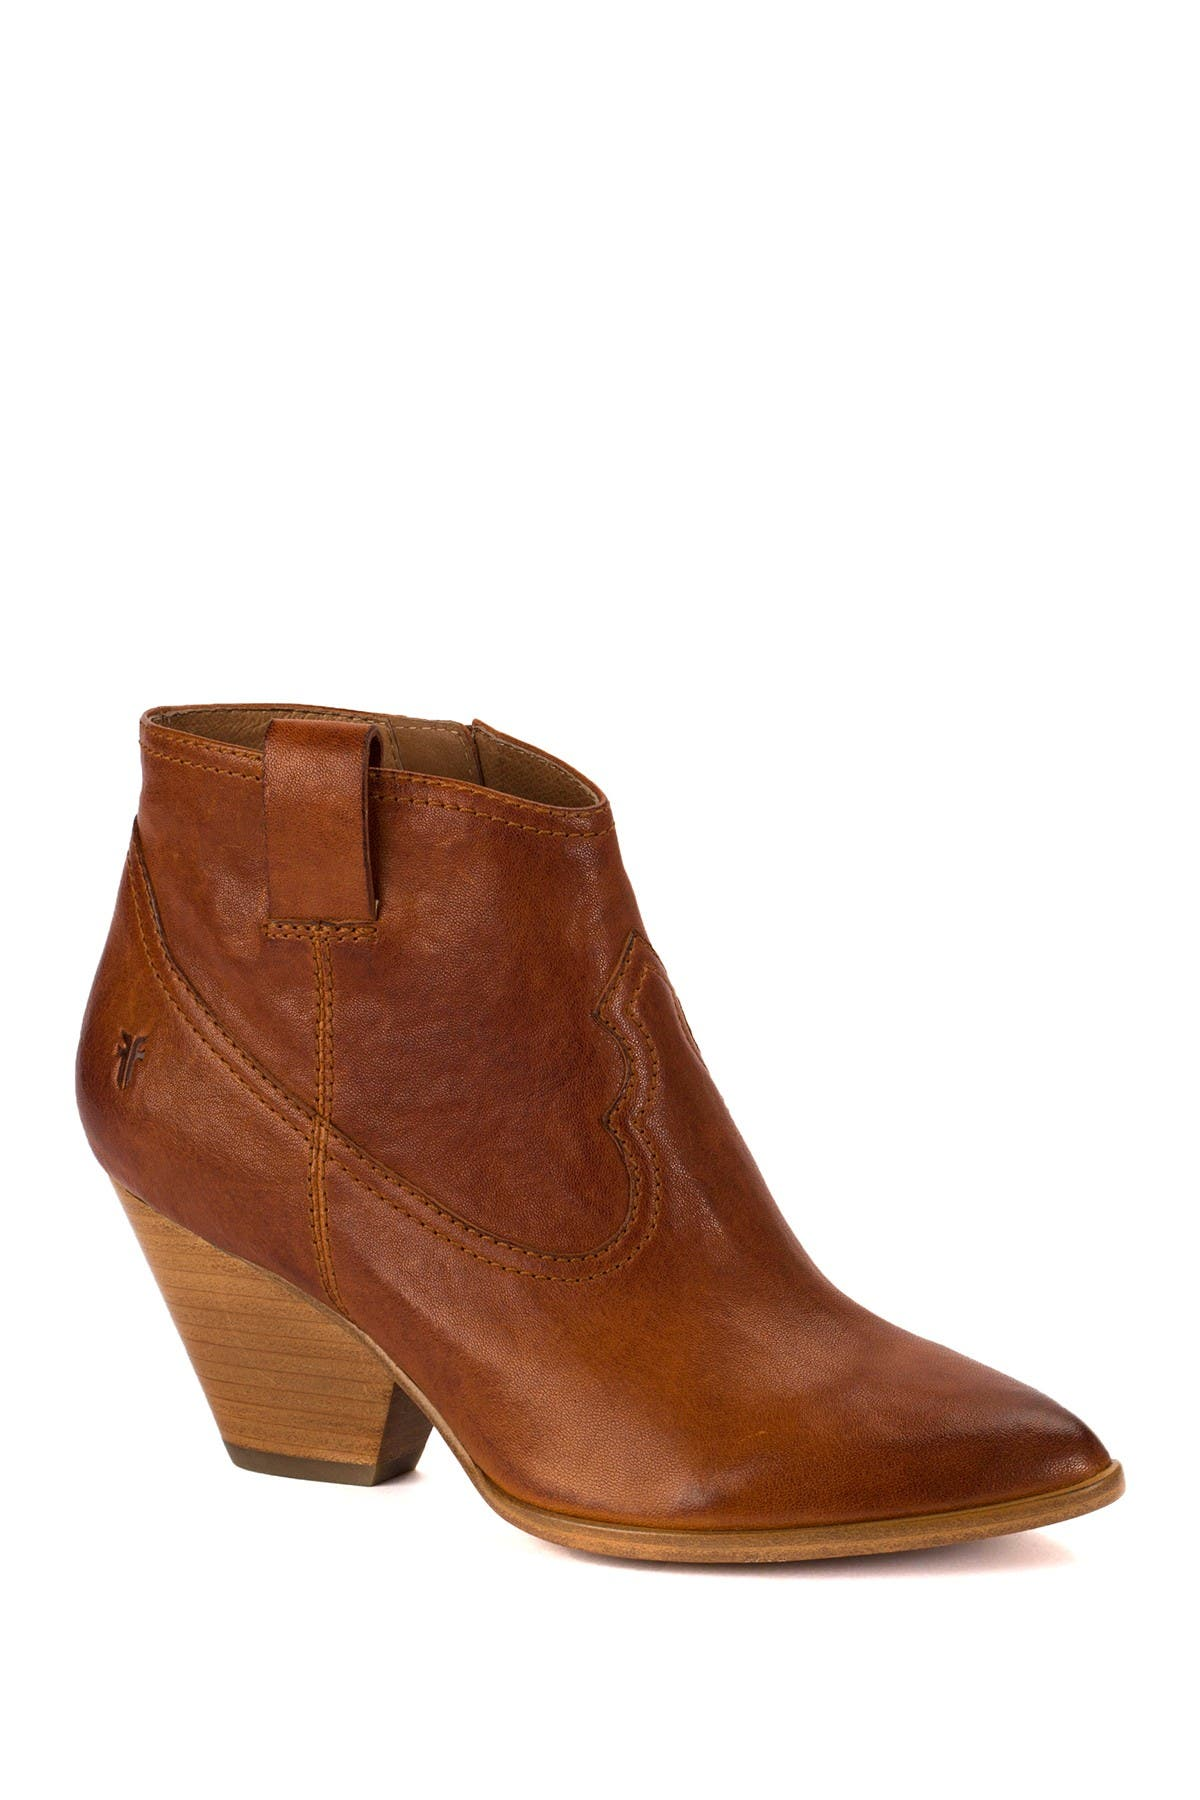 Image of Frye Reina Leather Bootie